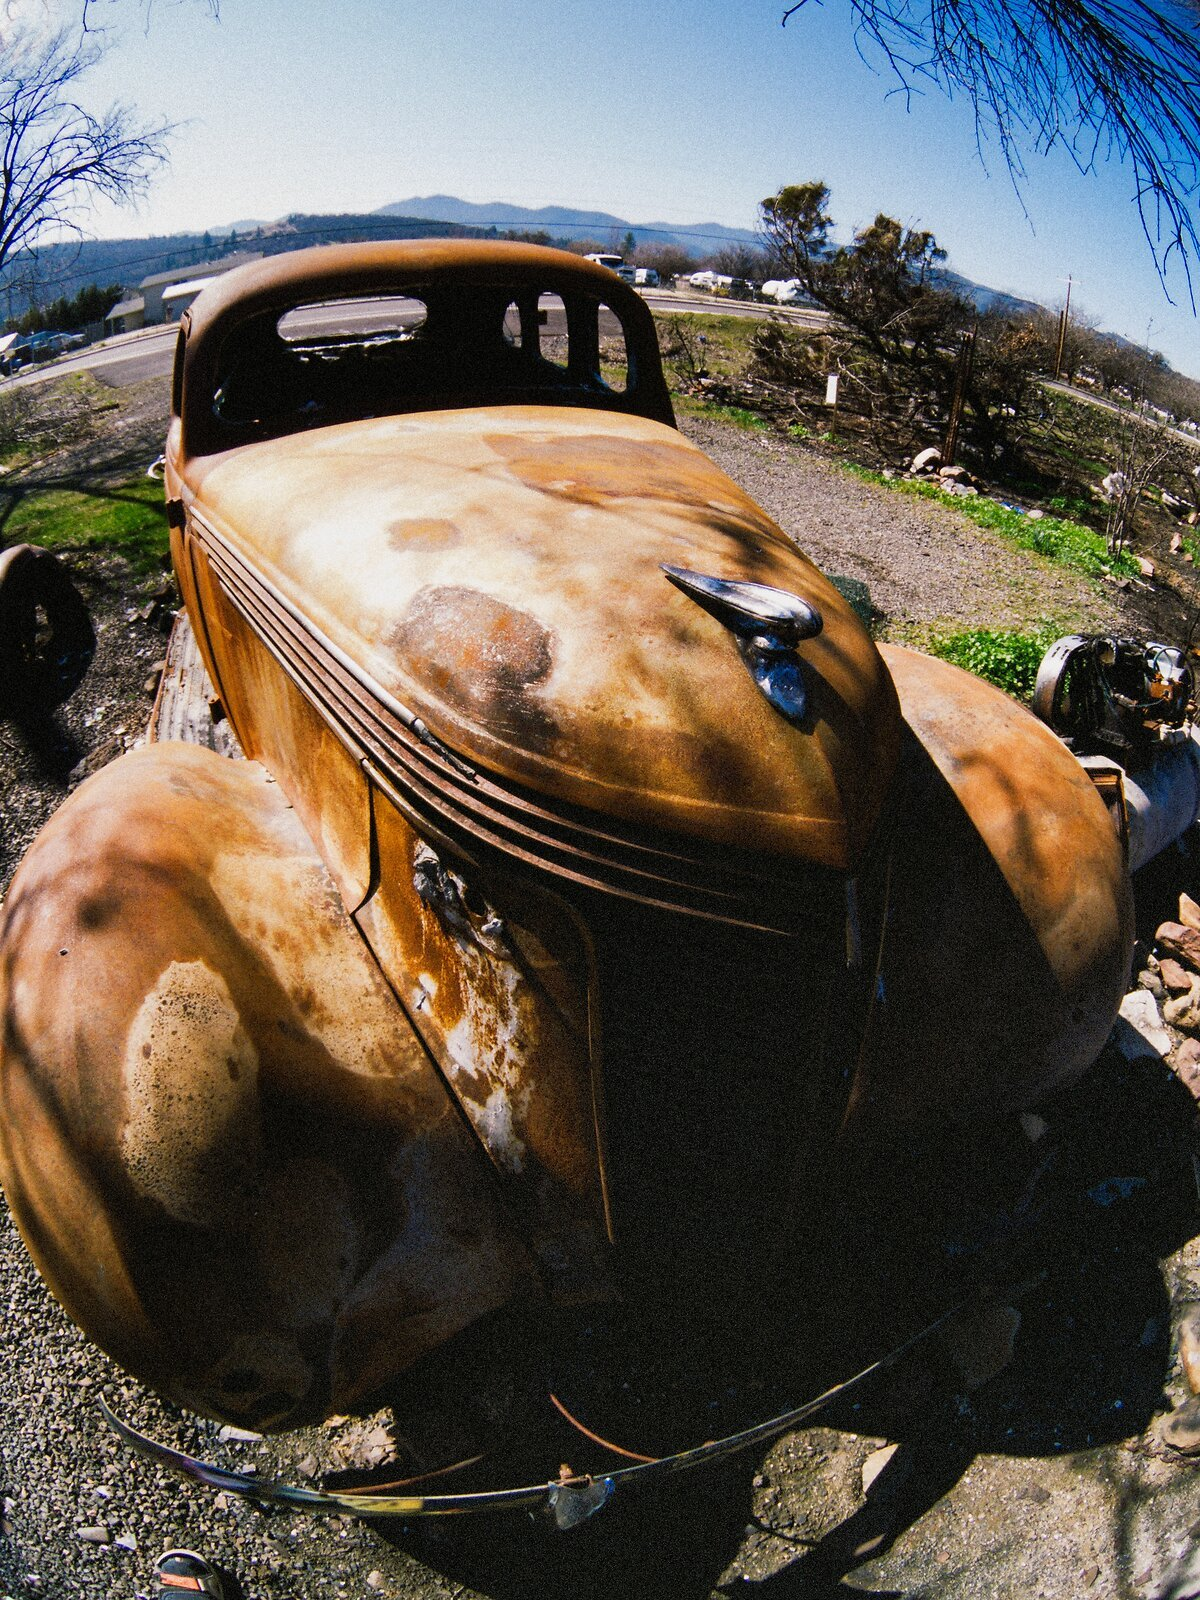 Q7_Mar2_21_fish-eye_burned_jalopy_#2.jpg